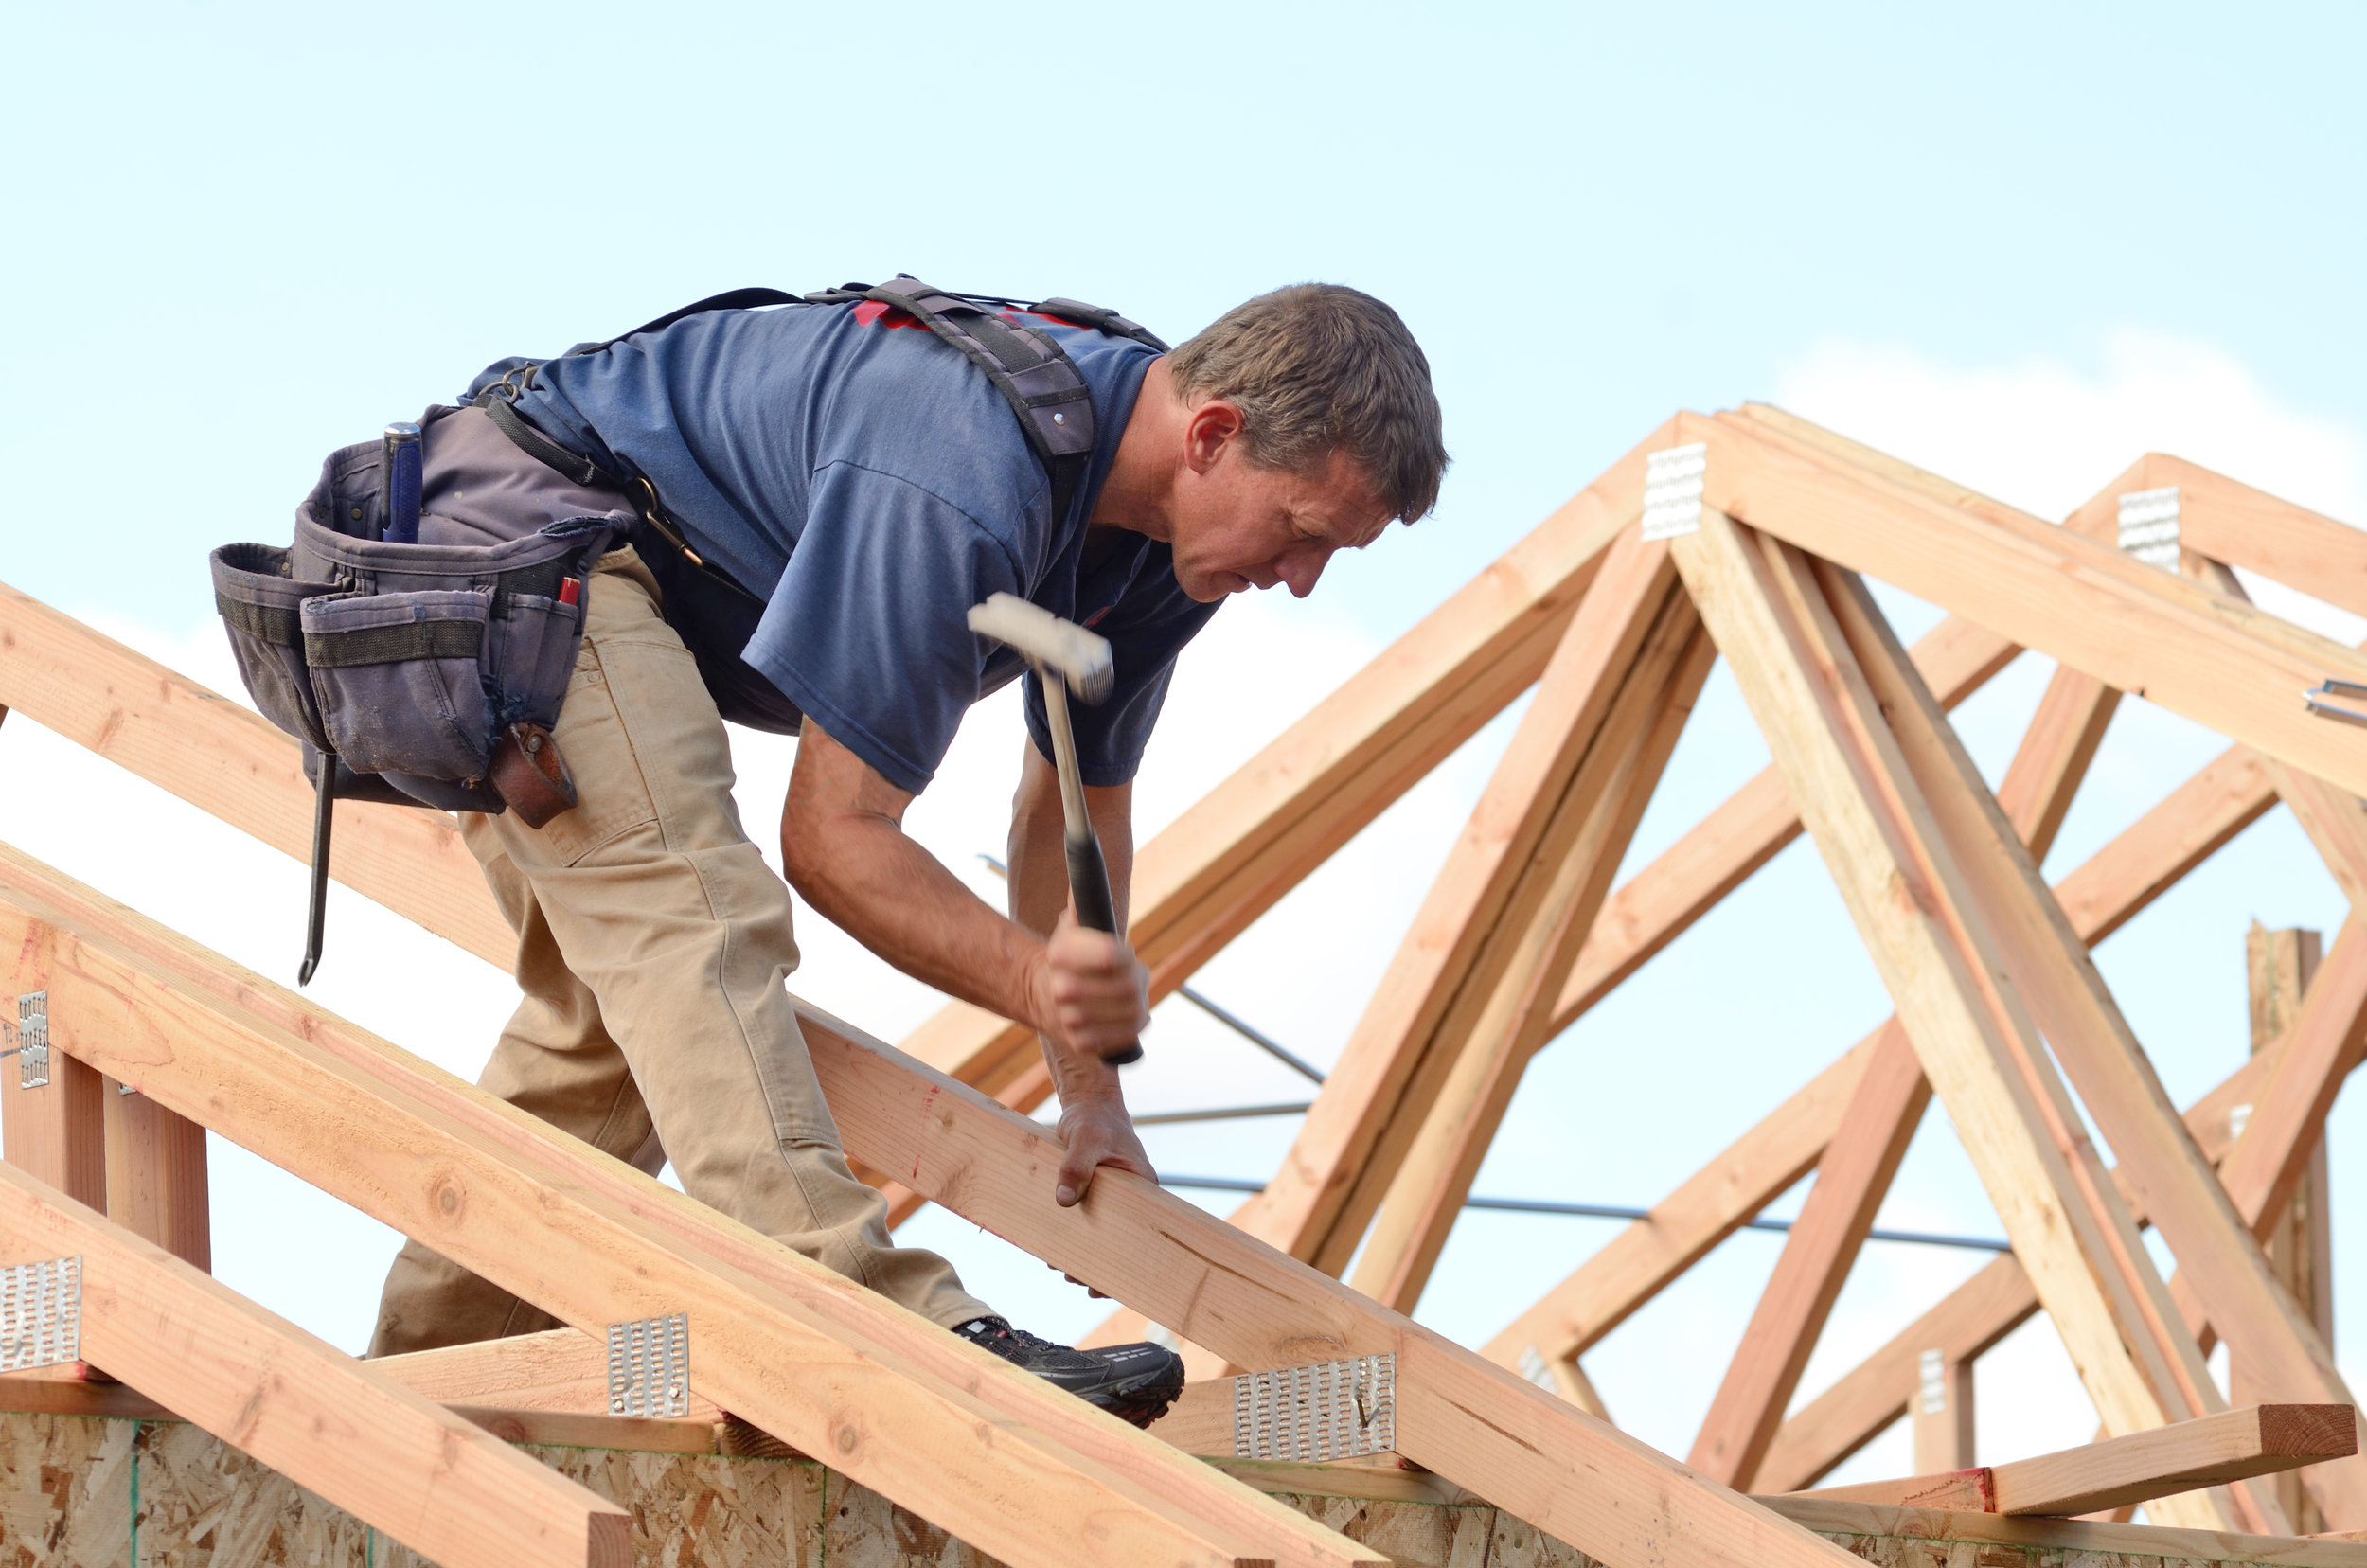 BUILDERS - As a professional you are expected to be an expert in every aspect of construction. Trusstec have years of experience in roof trusses and easi-joists and can help ensure you provide that professional result to your customer.Trusstec pride themselves on their site erection drawings supplied with every roof or floor which ensure accurate and efficient erection on site.Trusstec offer a chargeable site measure service, especially useful for extensions where a new roof must match seamlessly with the existing.